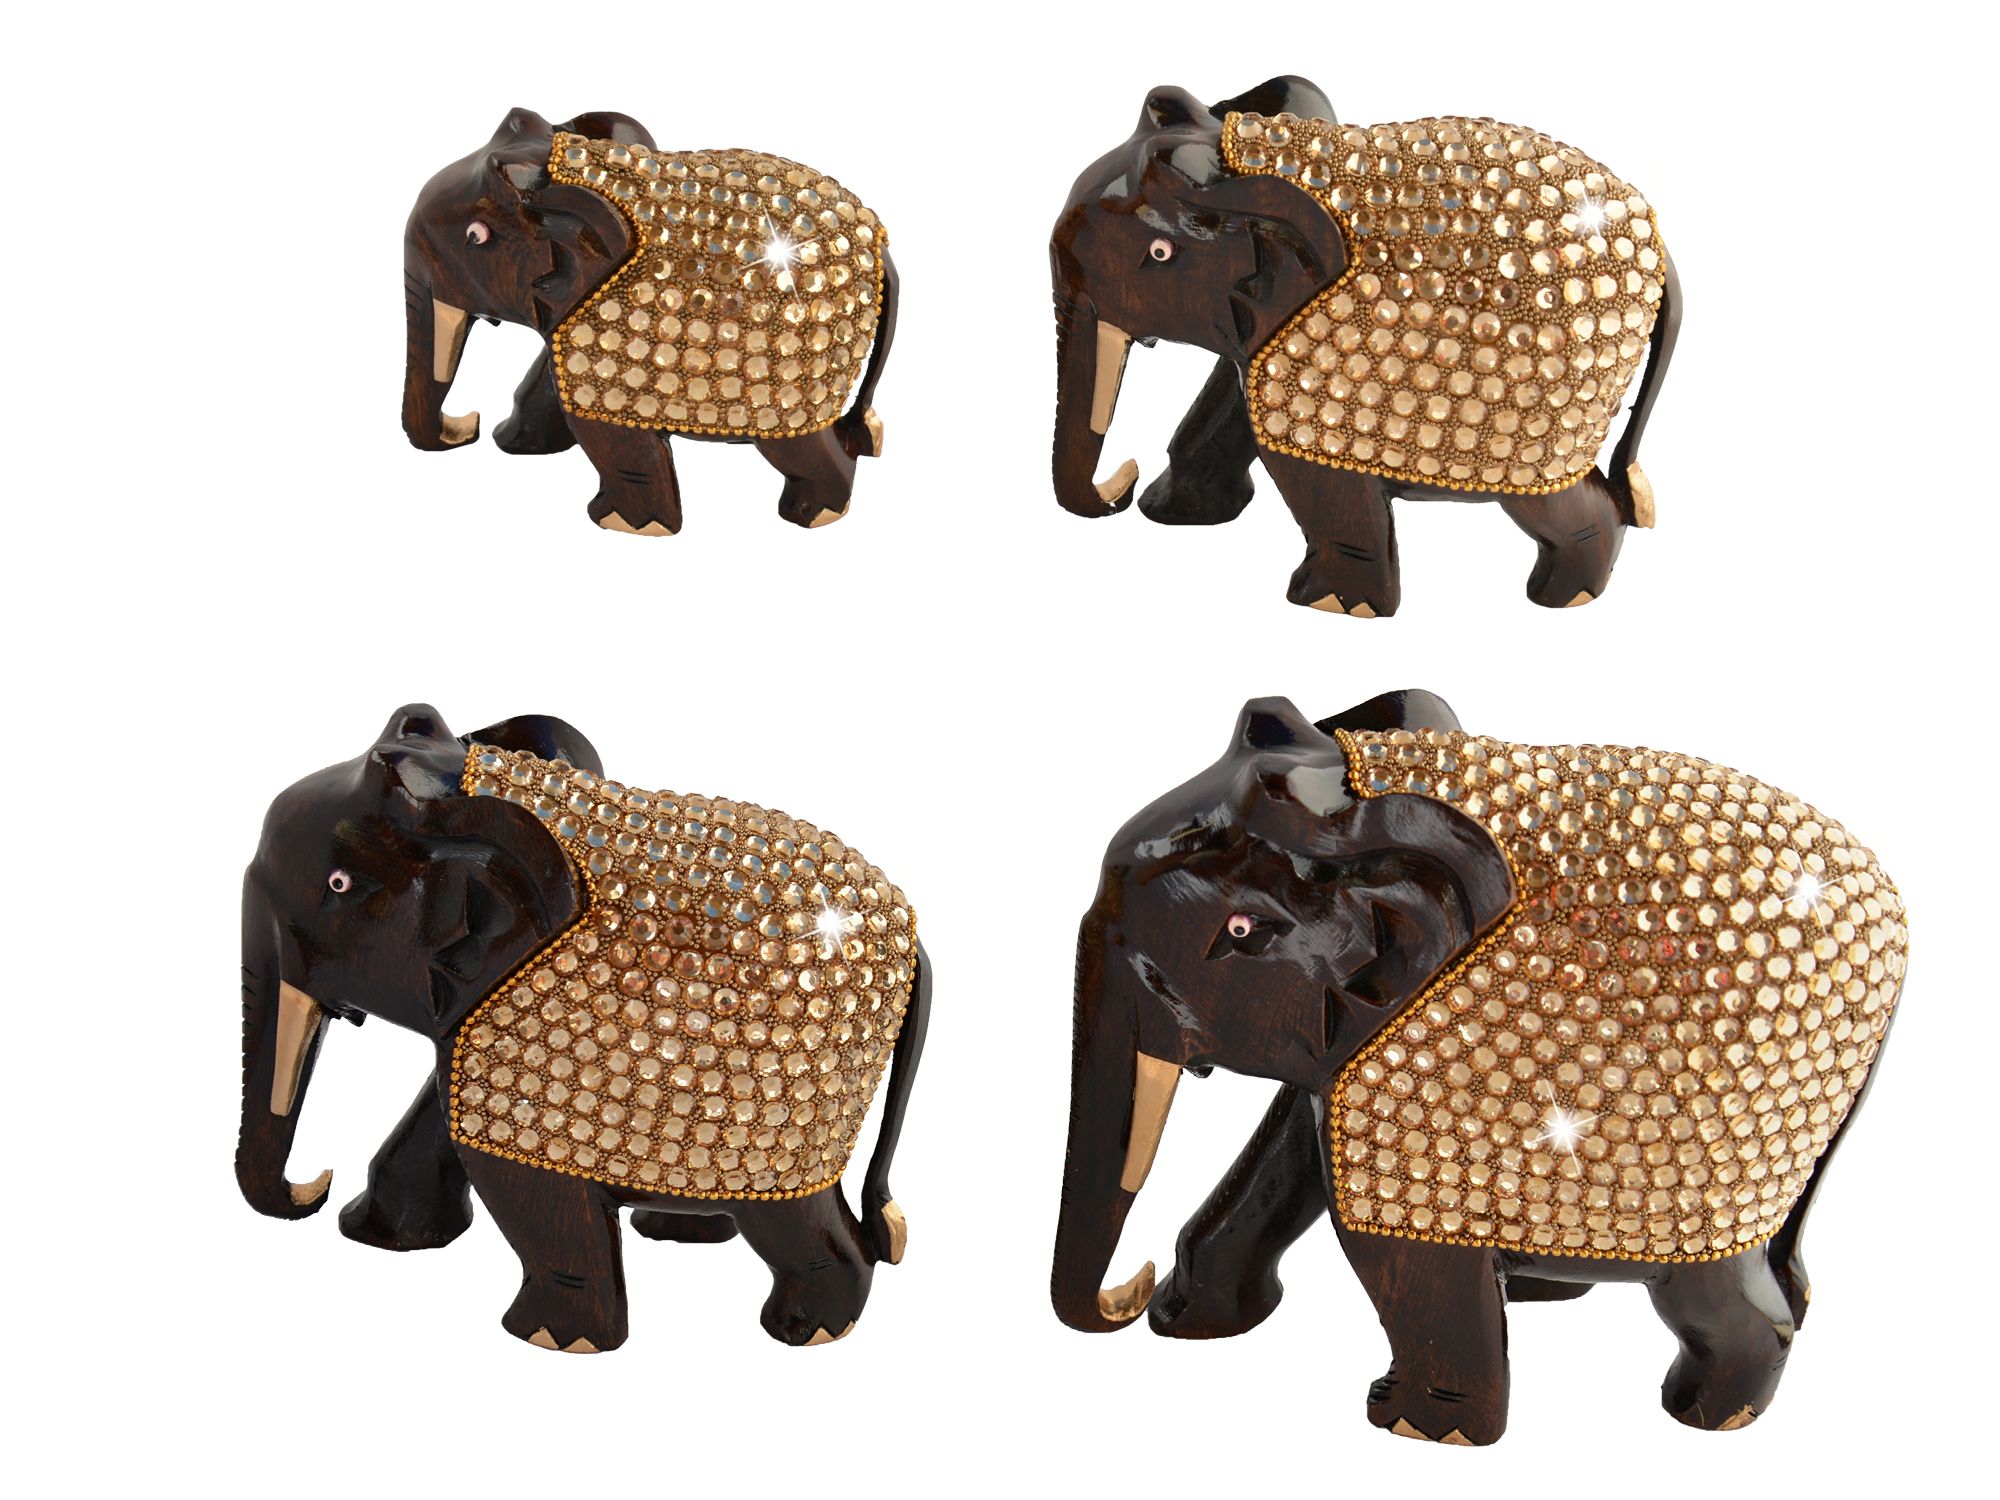 Roasewood-Sparkle-Elephant-Set-of-four-The-Modish-Store-Bling  (5)